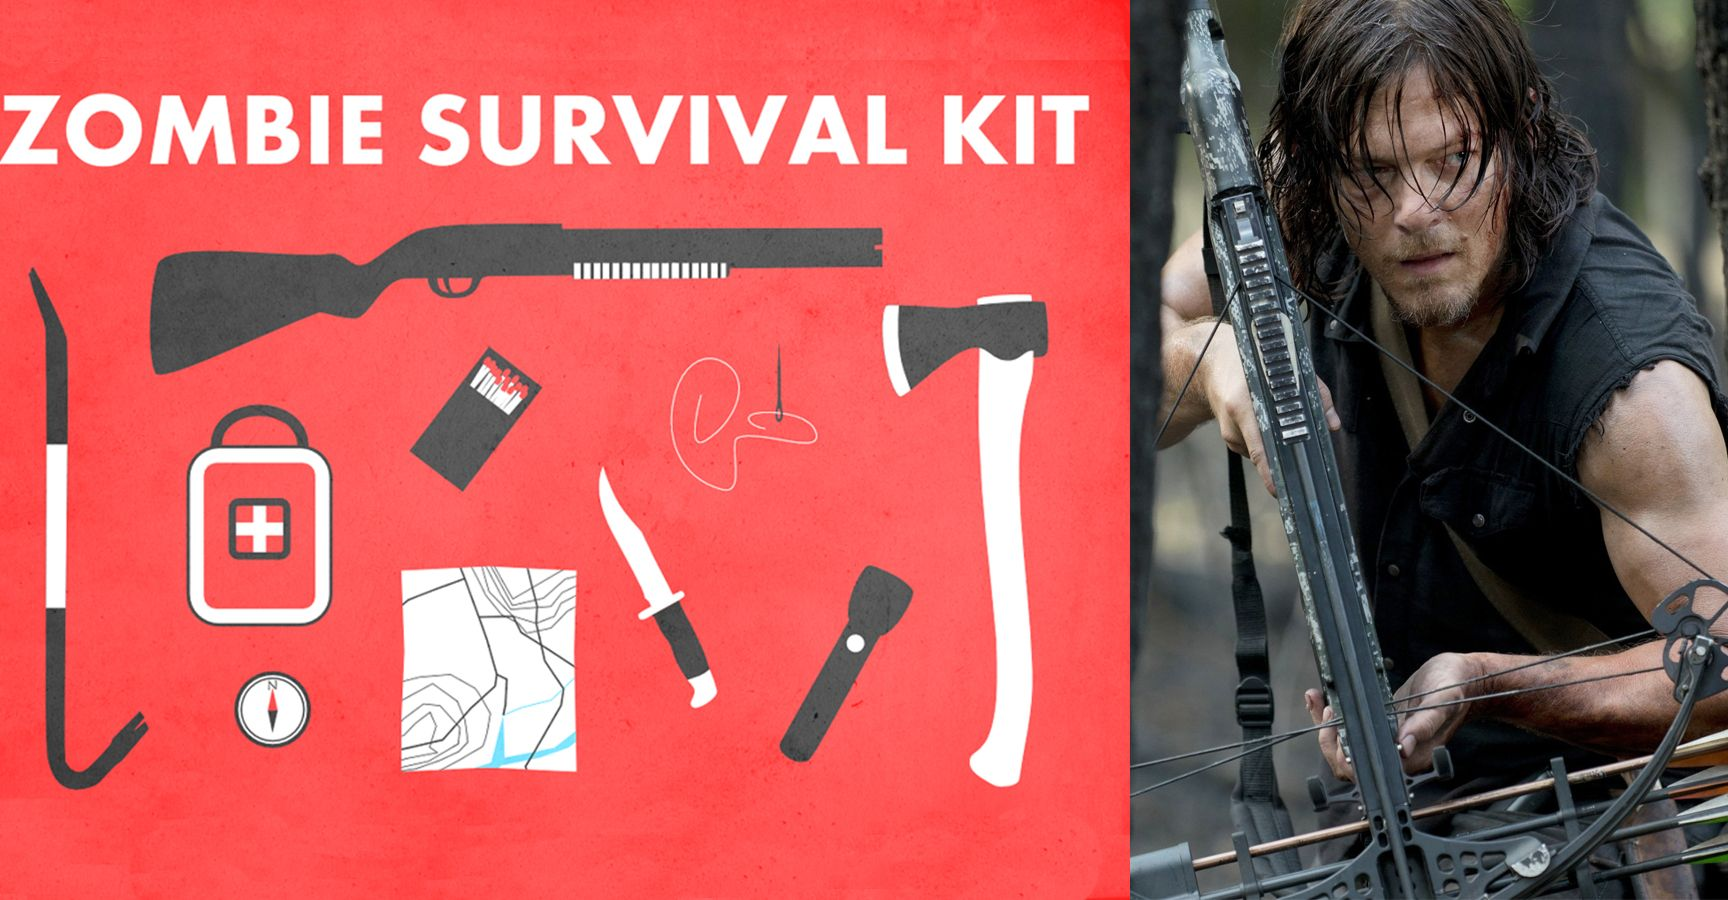 15 Life Hacks To Help You Survive The Zombie Apocalypse